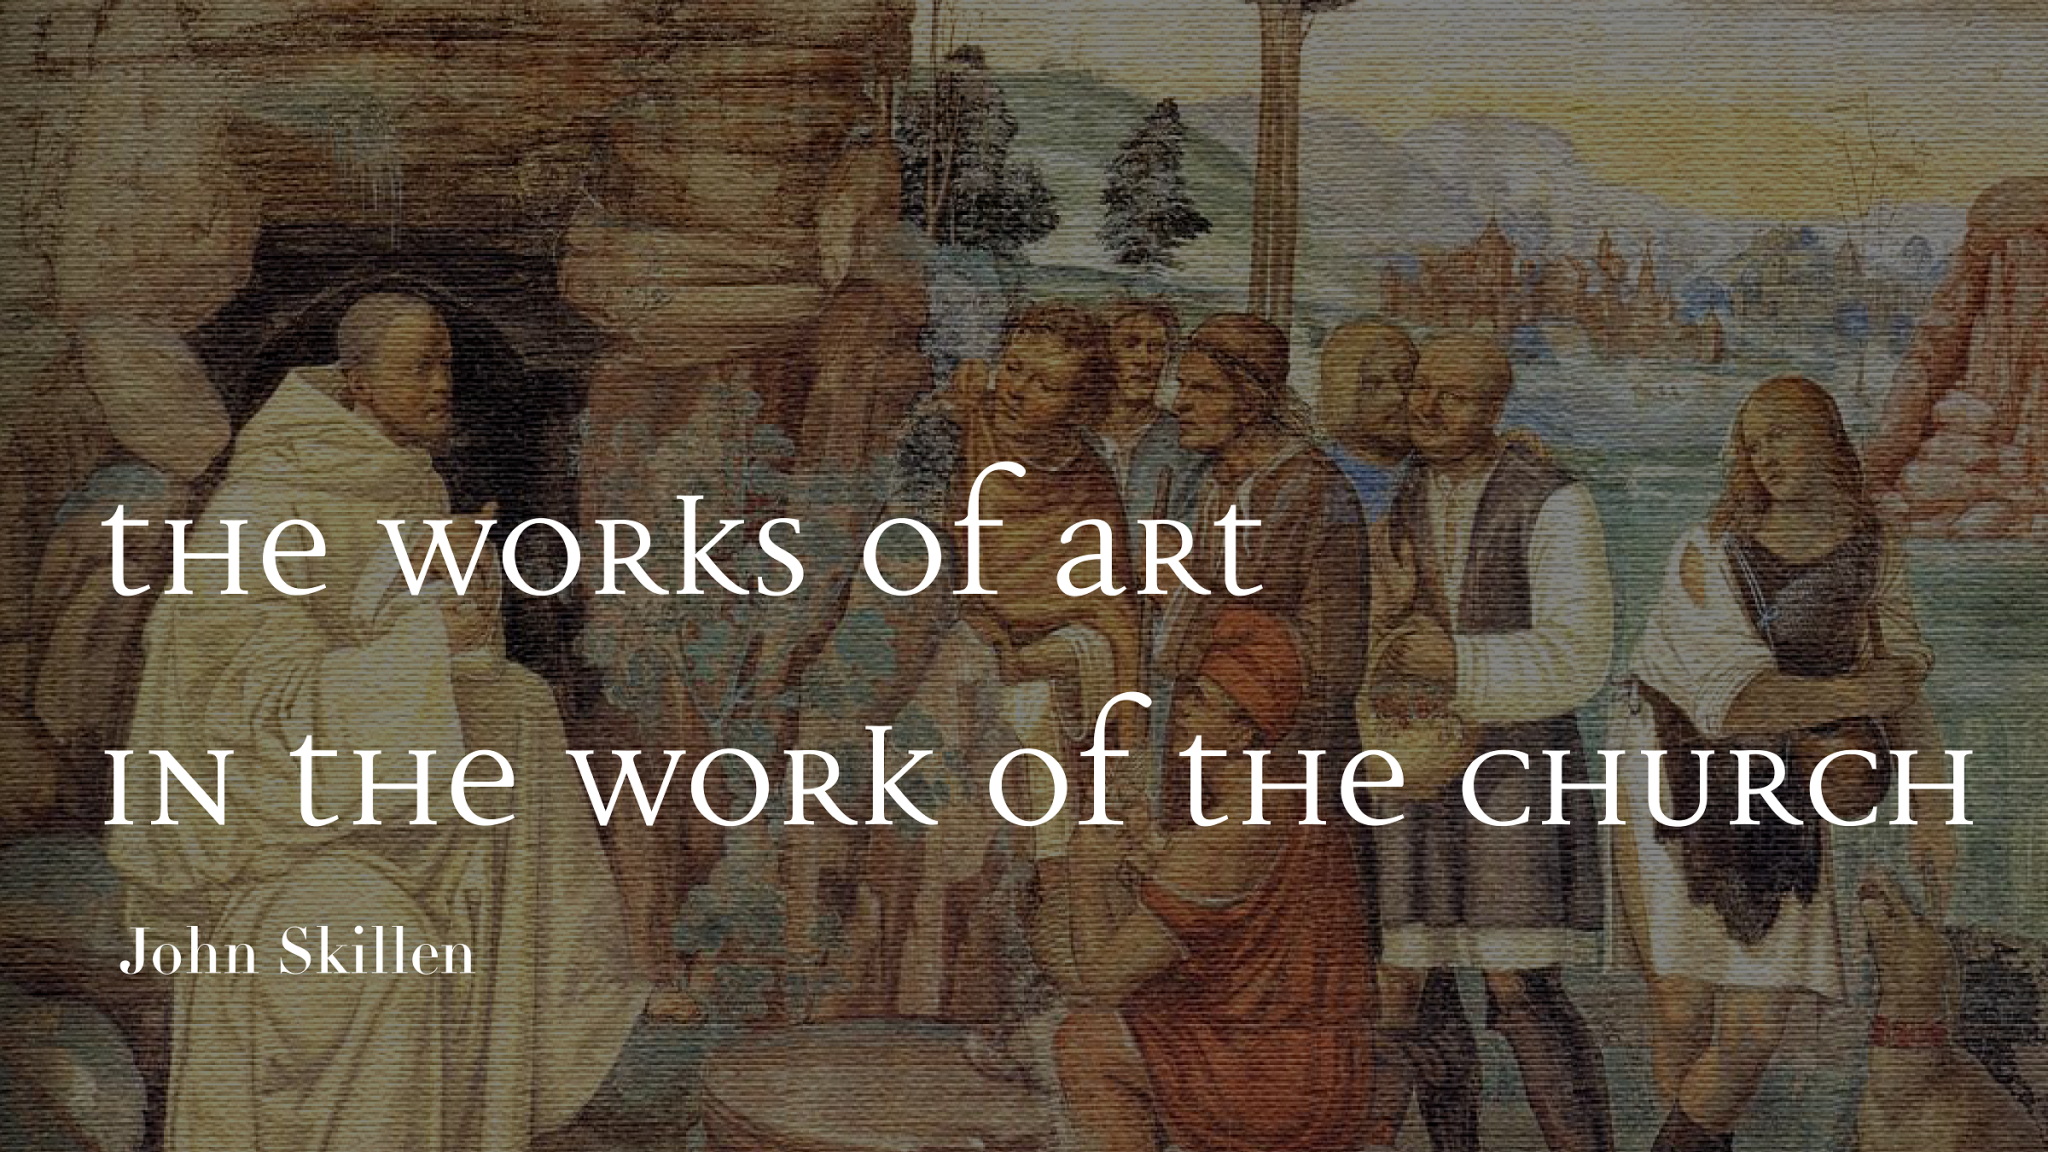 The Works of Art in the Work of the Church